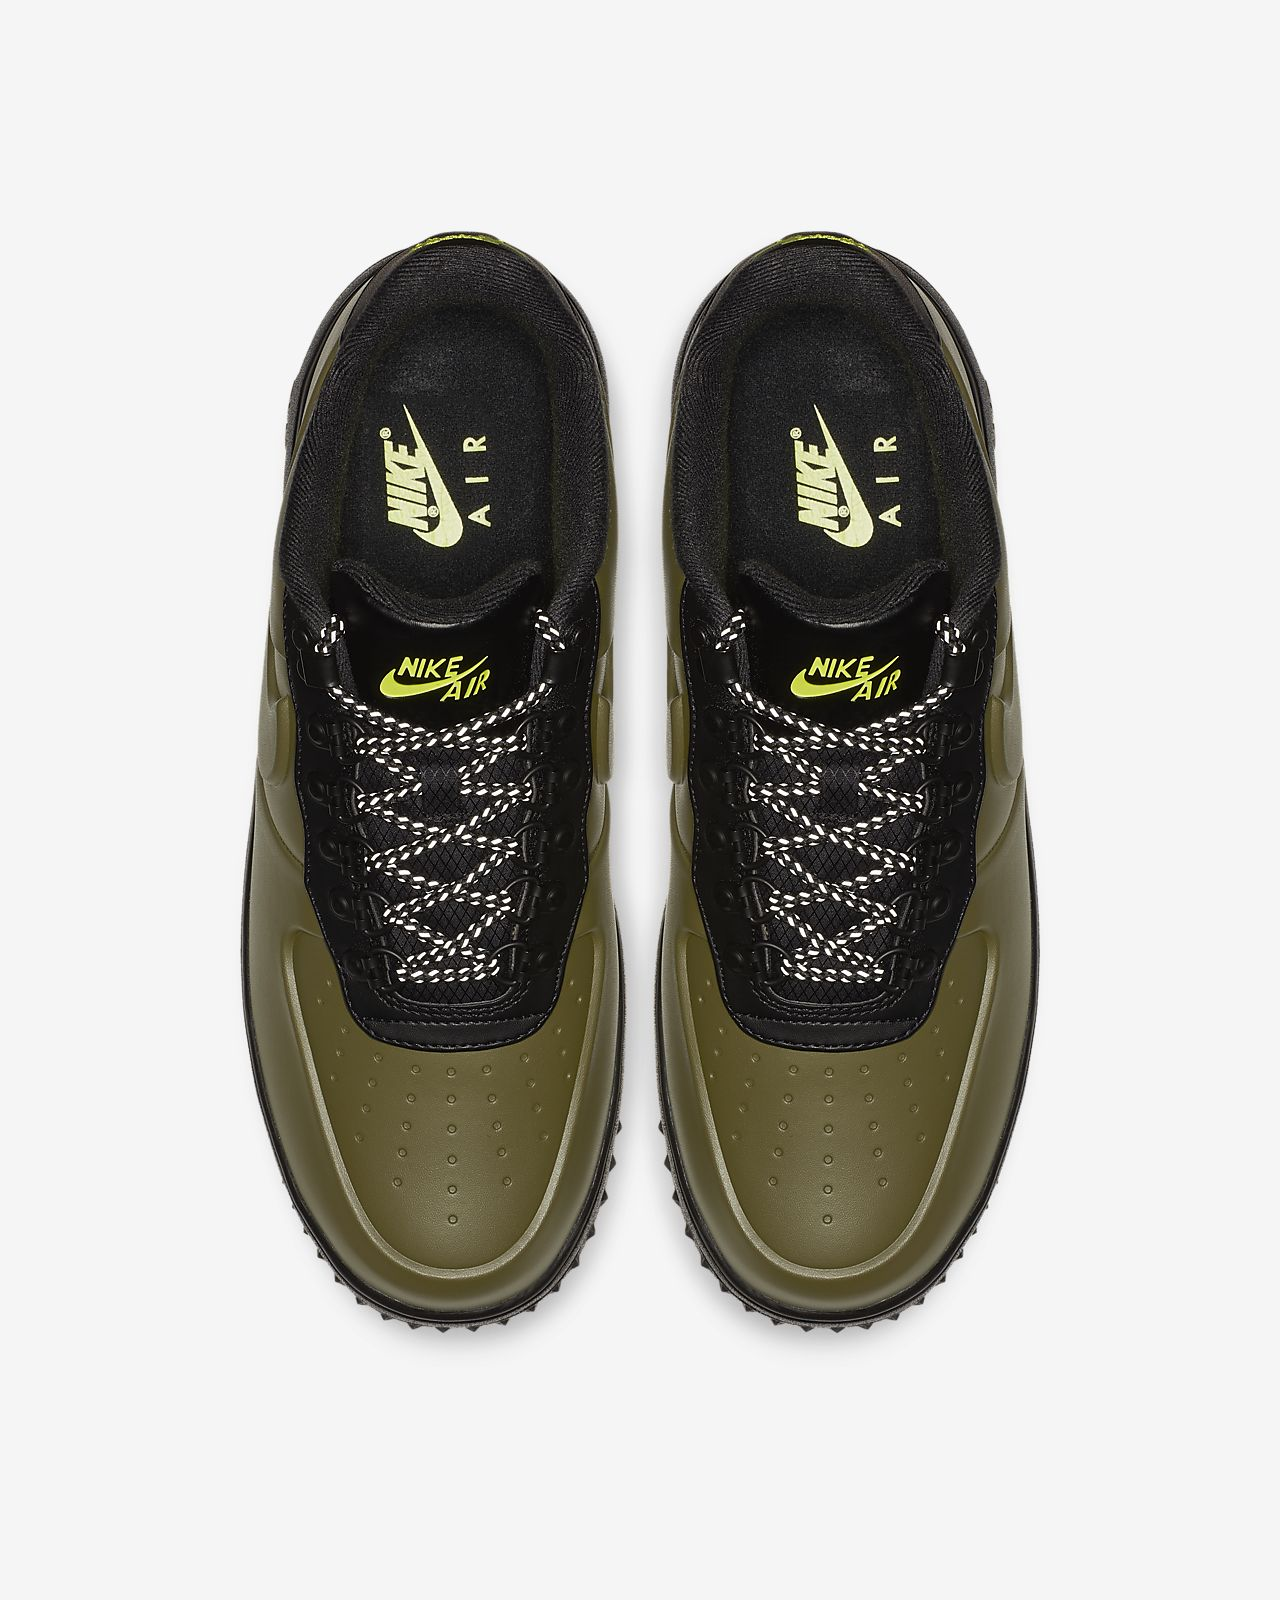 outlet store f4cb9 ae524 ... Chaussure Nike Lunar Force 1 Duckboot Low pour Homme